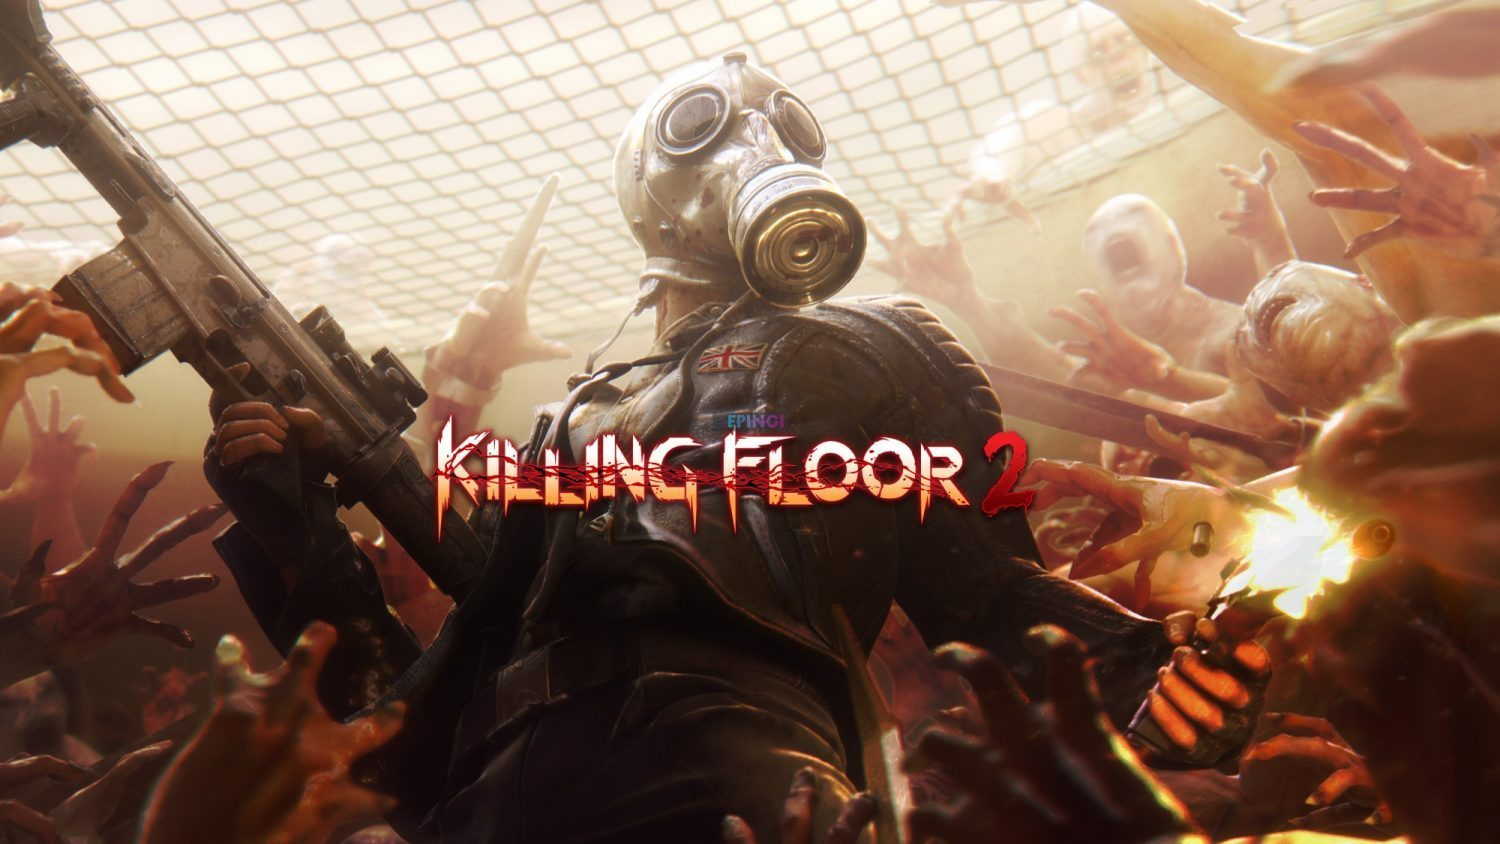 Killing Floor 2 PC Full Version Free Download